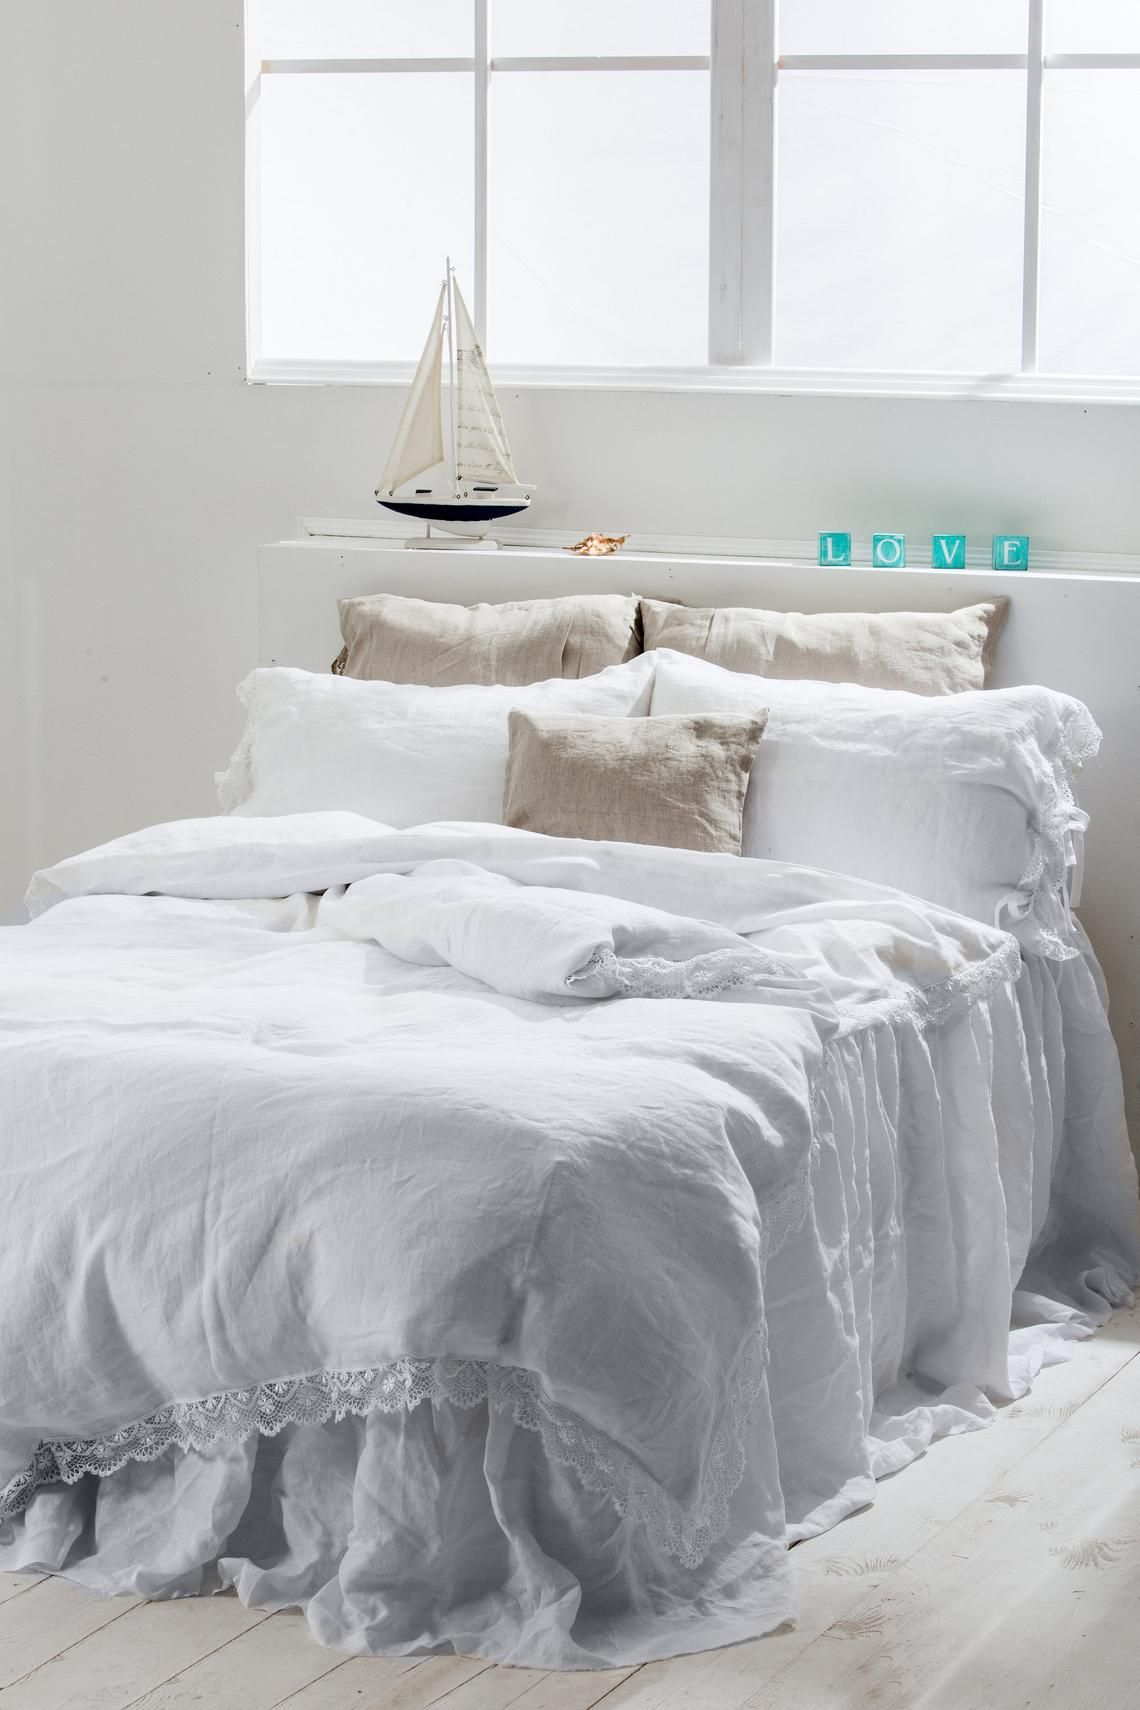 White Linen Duvet Cover With Lace Linen Duvet Cover Washed Linen